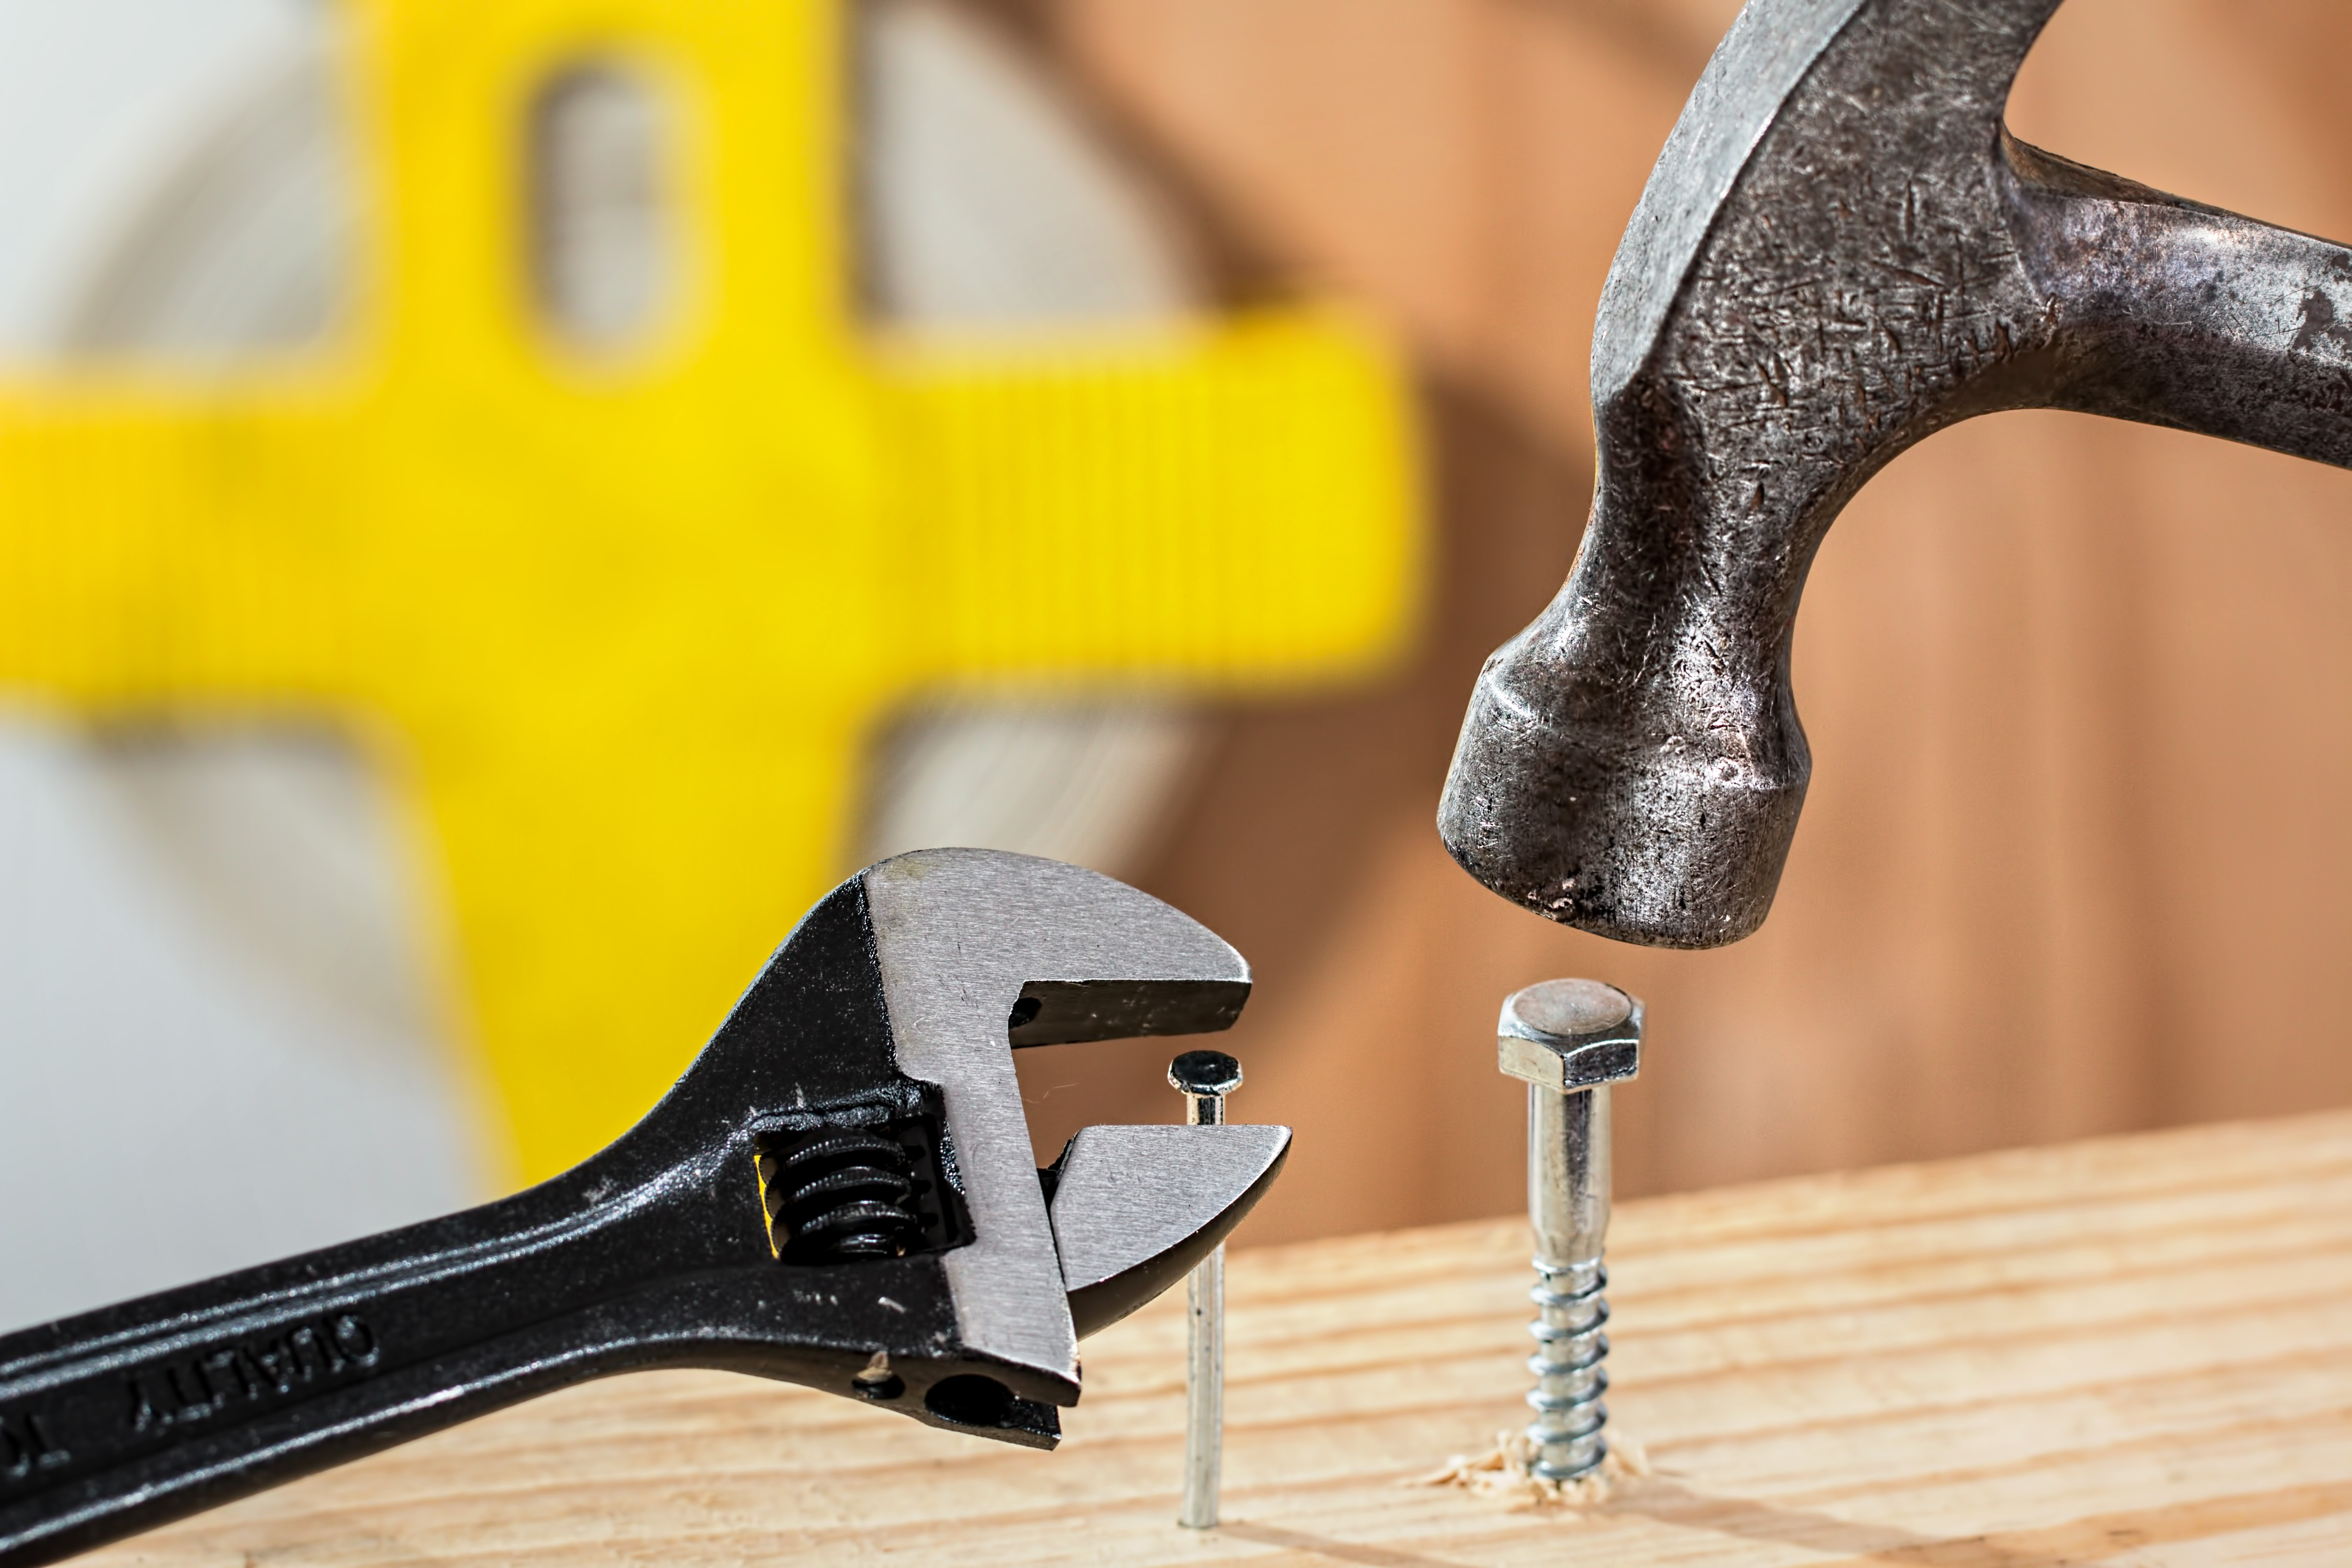 Hardware stores in Singapore: Where to buy supplies